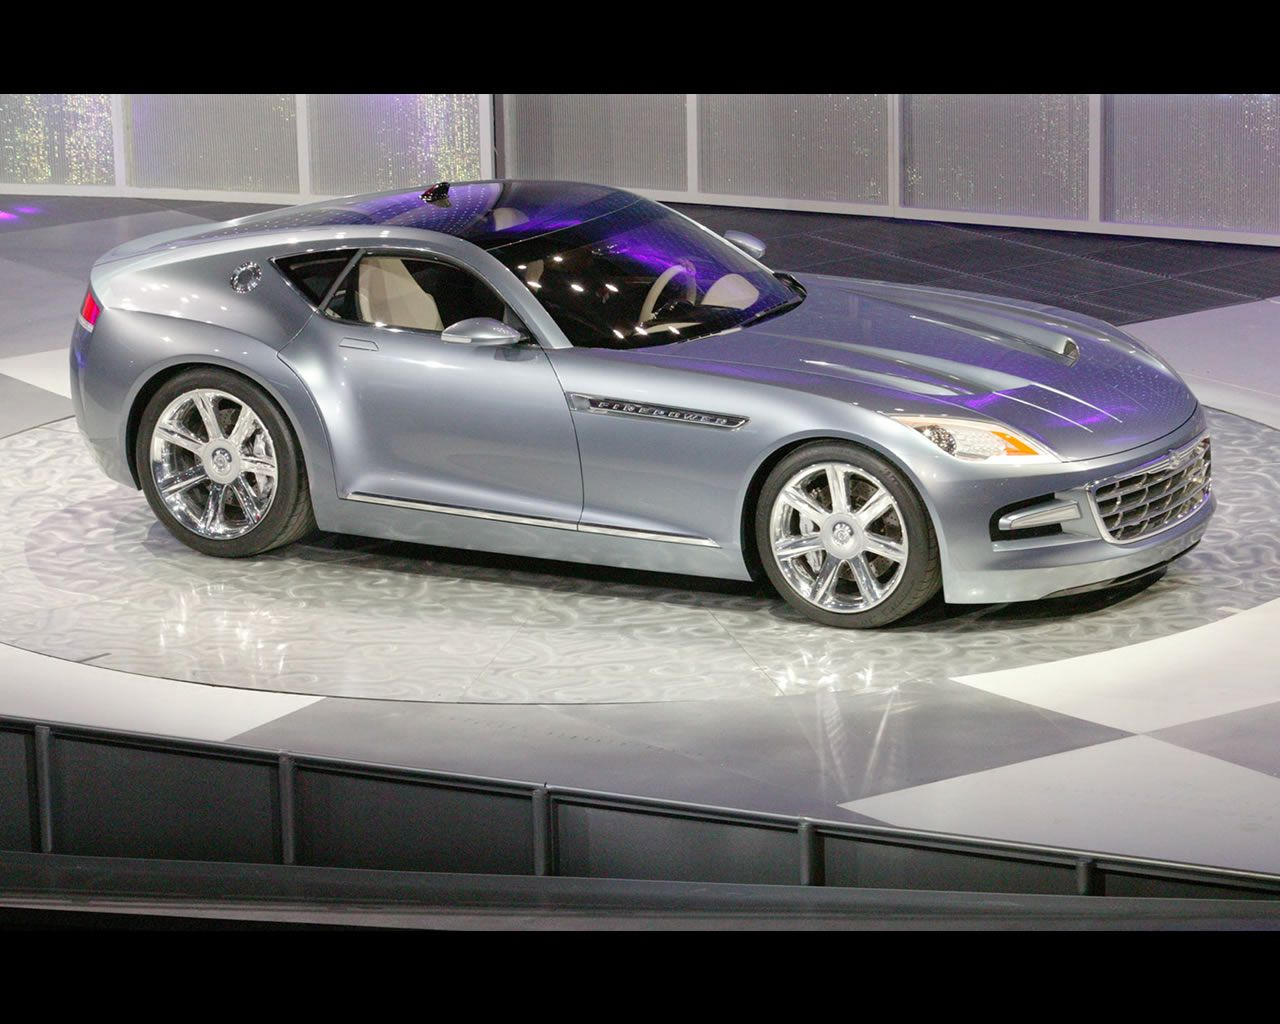 2019 Chrysler Sports Car In 2020 With Images Chrysler Sports